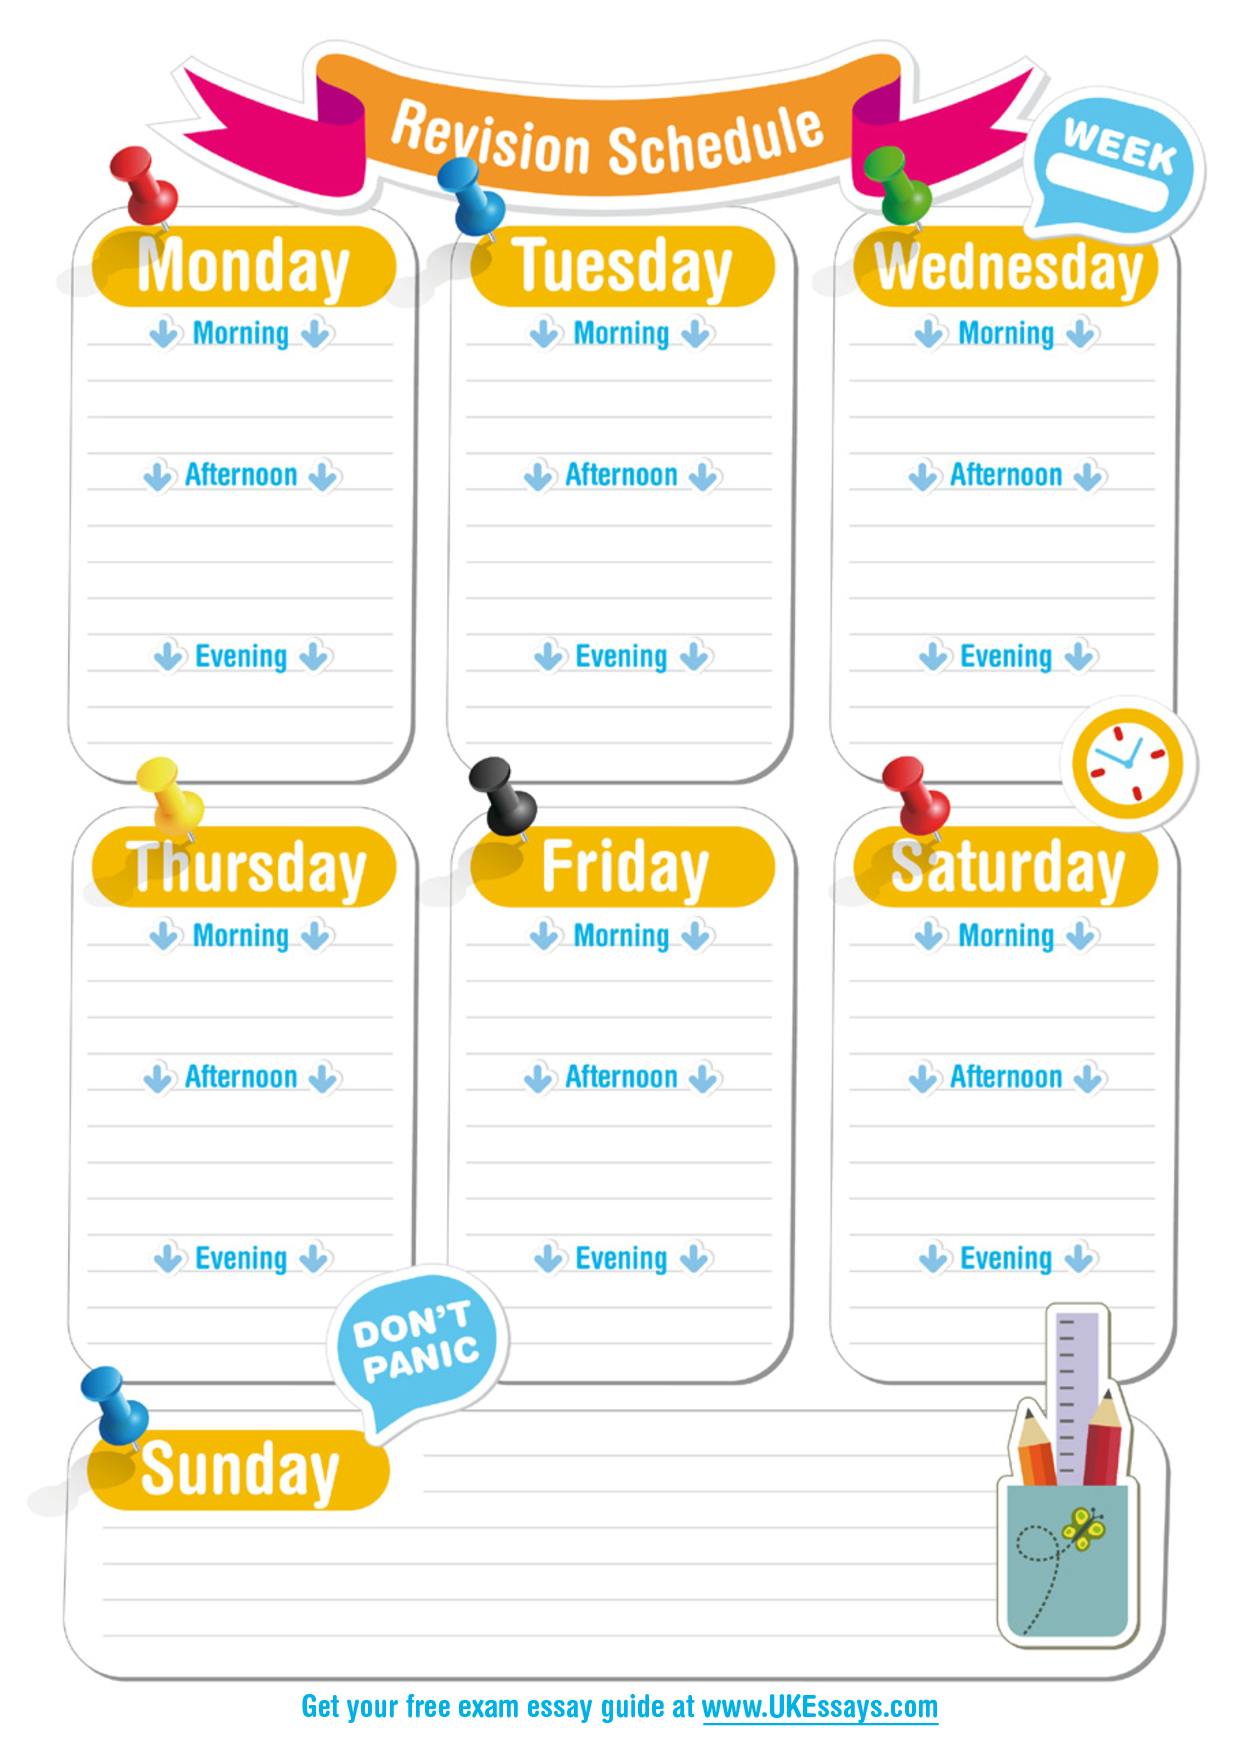 Timetable Template | Blank Revision Timetable Template Classroom Pinterest School